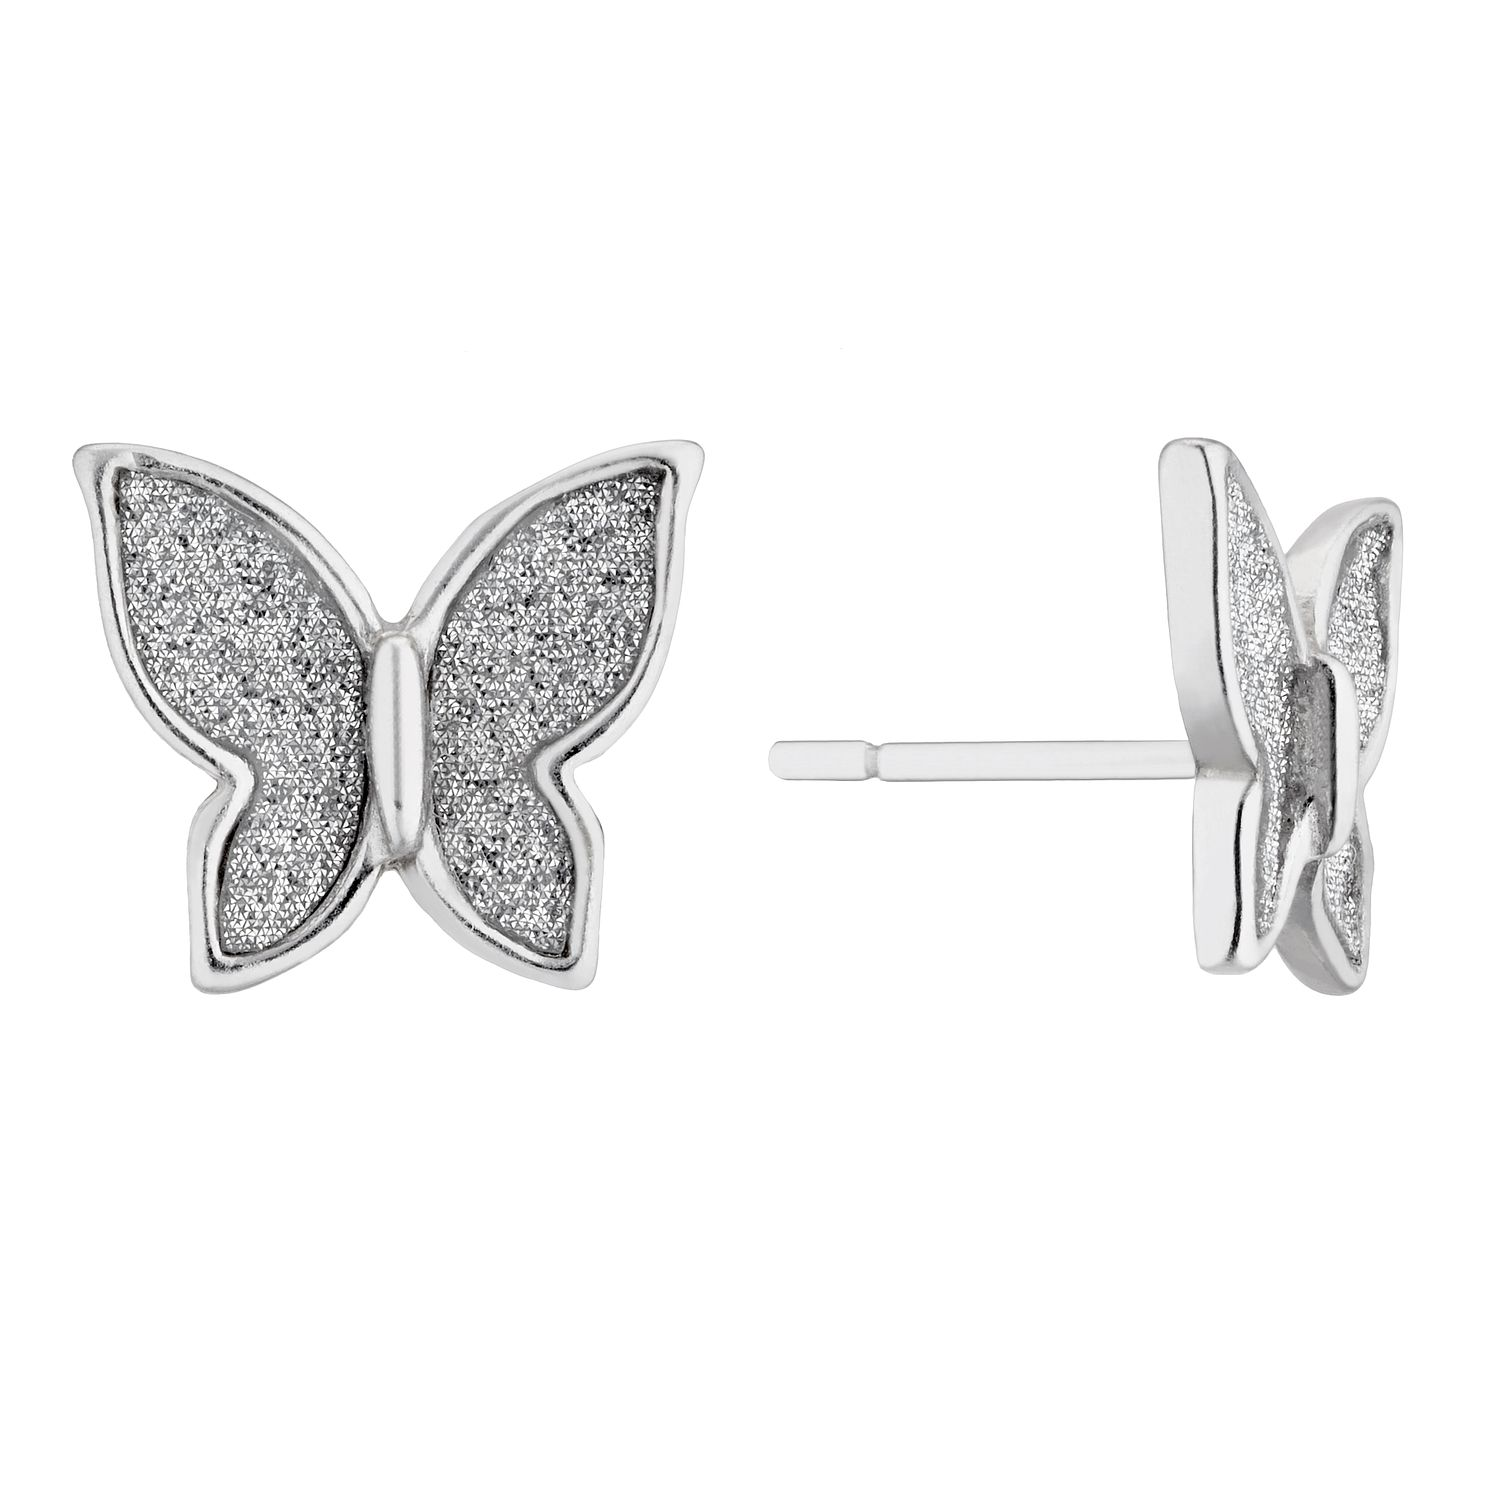 Silver Glitter Butterfly Stud Earrings - Product number 4819063